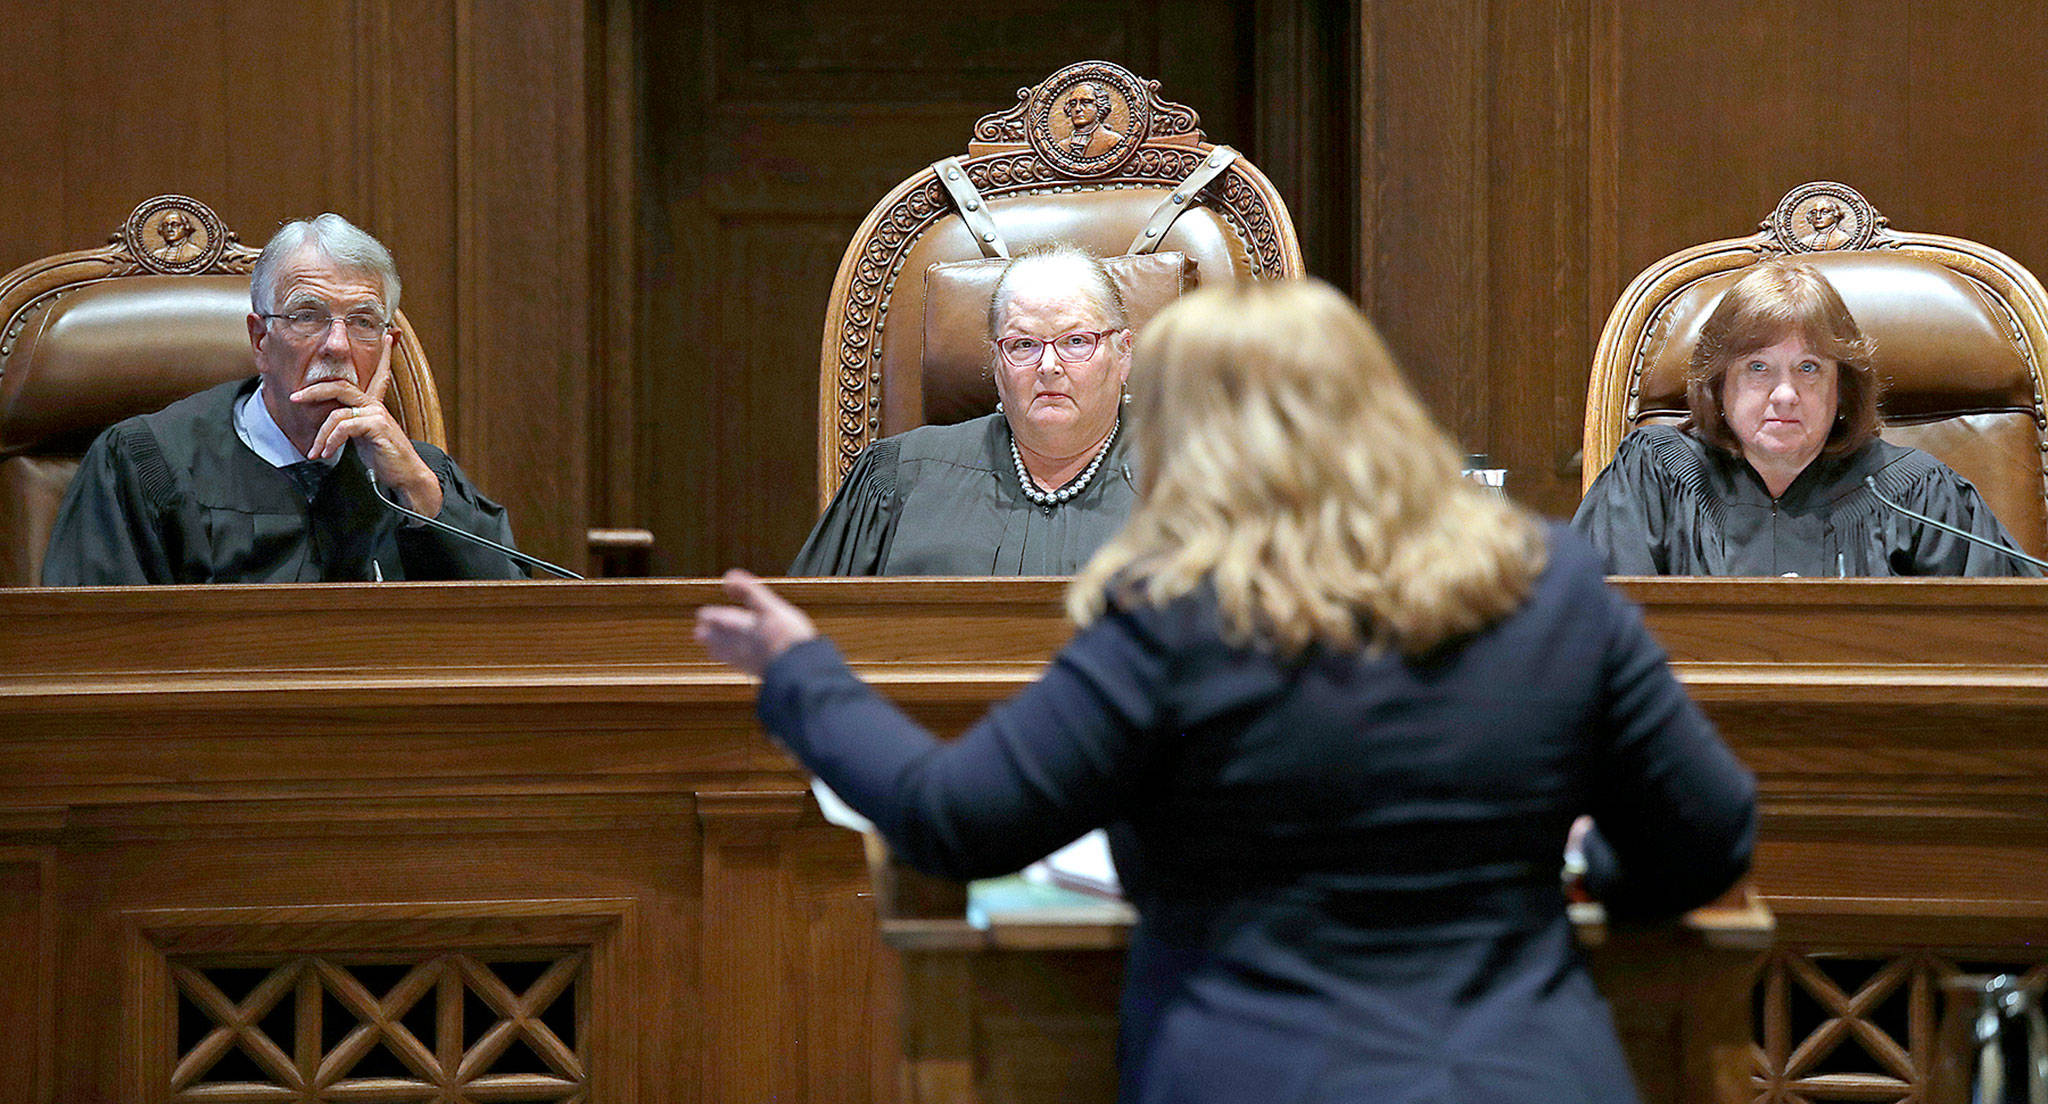 From left, Justice Charles W. Johnson, Chief Justice Mary E. Fairhurst and Justice Barbara A. Madsen listen to Michele Earl-Hubbard, the attorney for a media coalition, during a hearing before the Washington Supreme Court on Tuesday in Olympia. (AP Photo/Elaine Thompson)